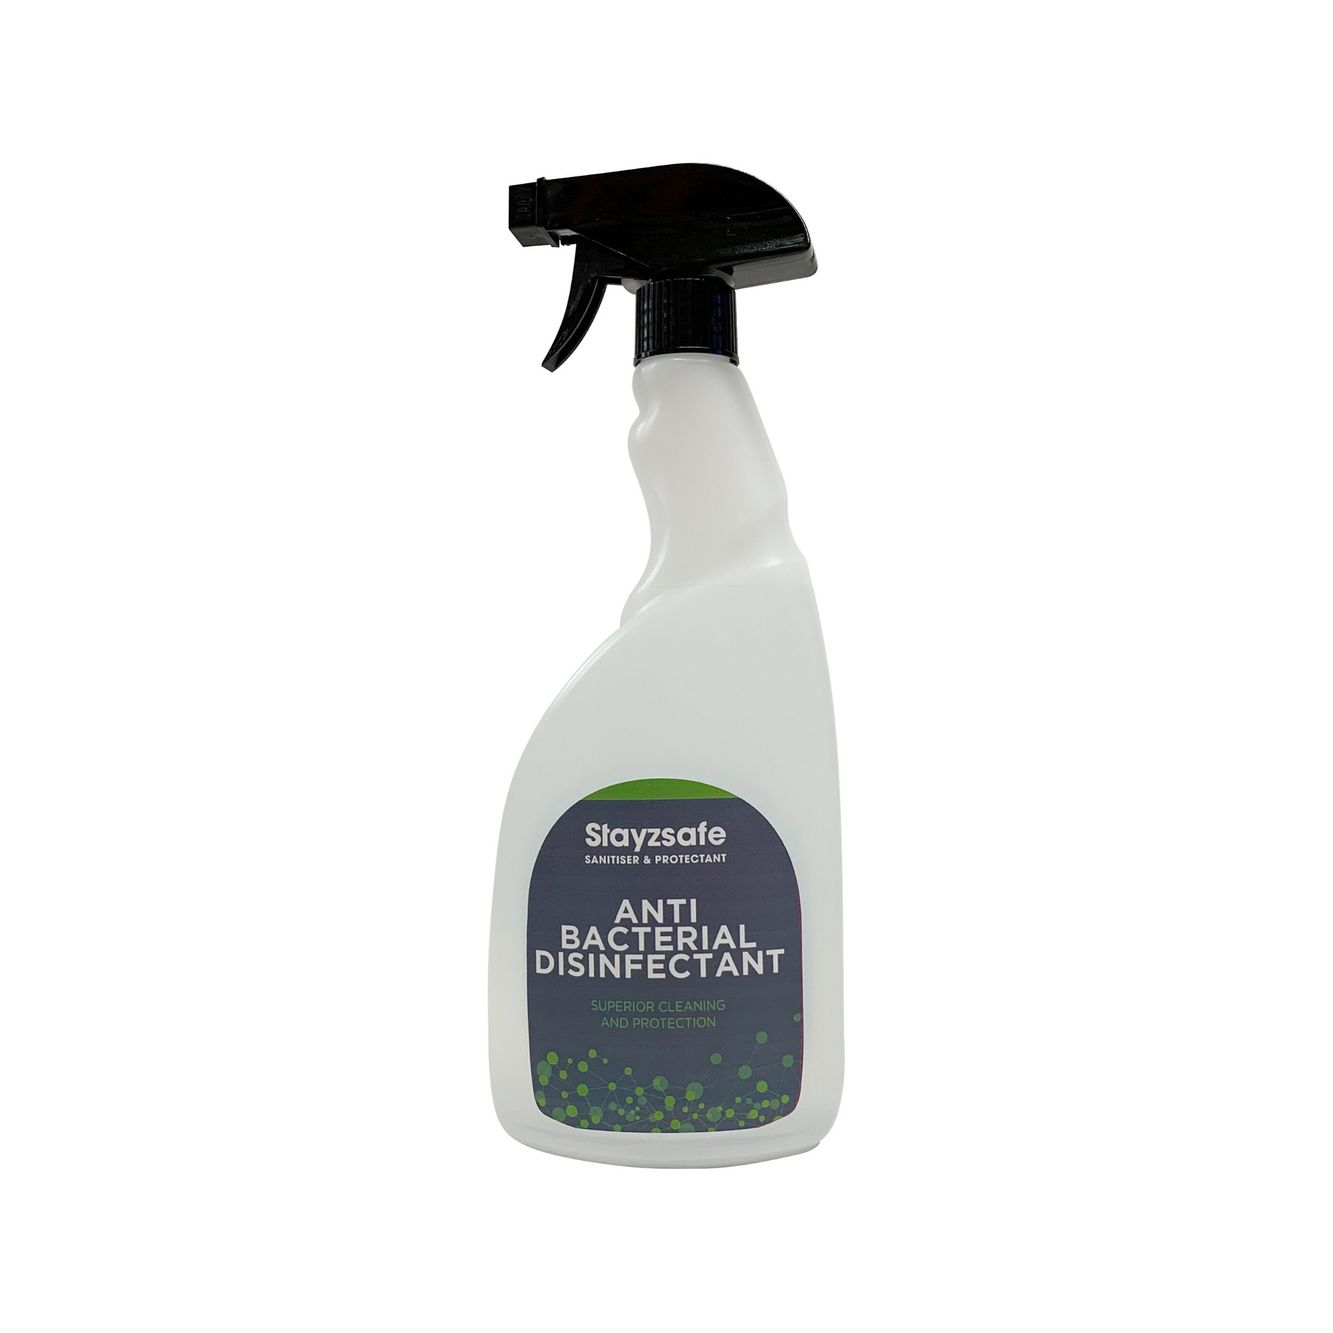 stayzsafe anti bacterial disinfectant